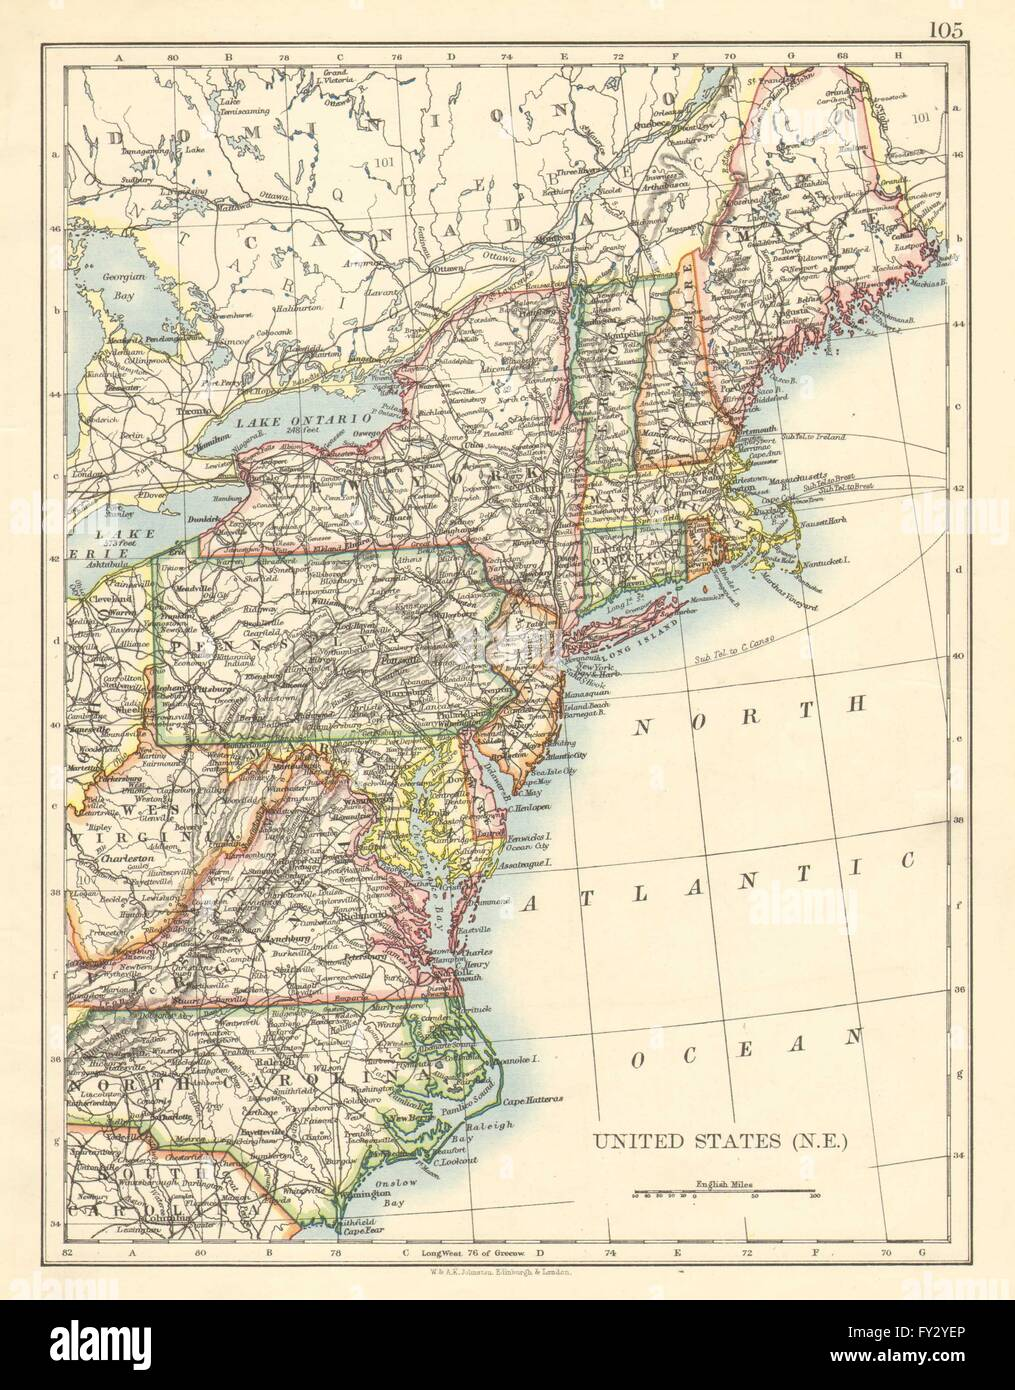 UNITED STATES NORTH EAST. New England Appalachia Atlantic states ...